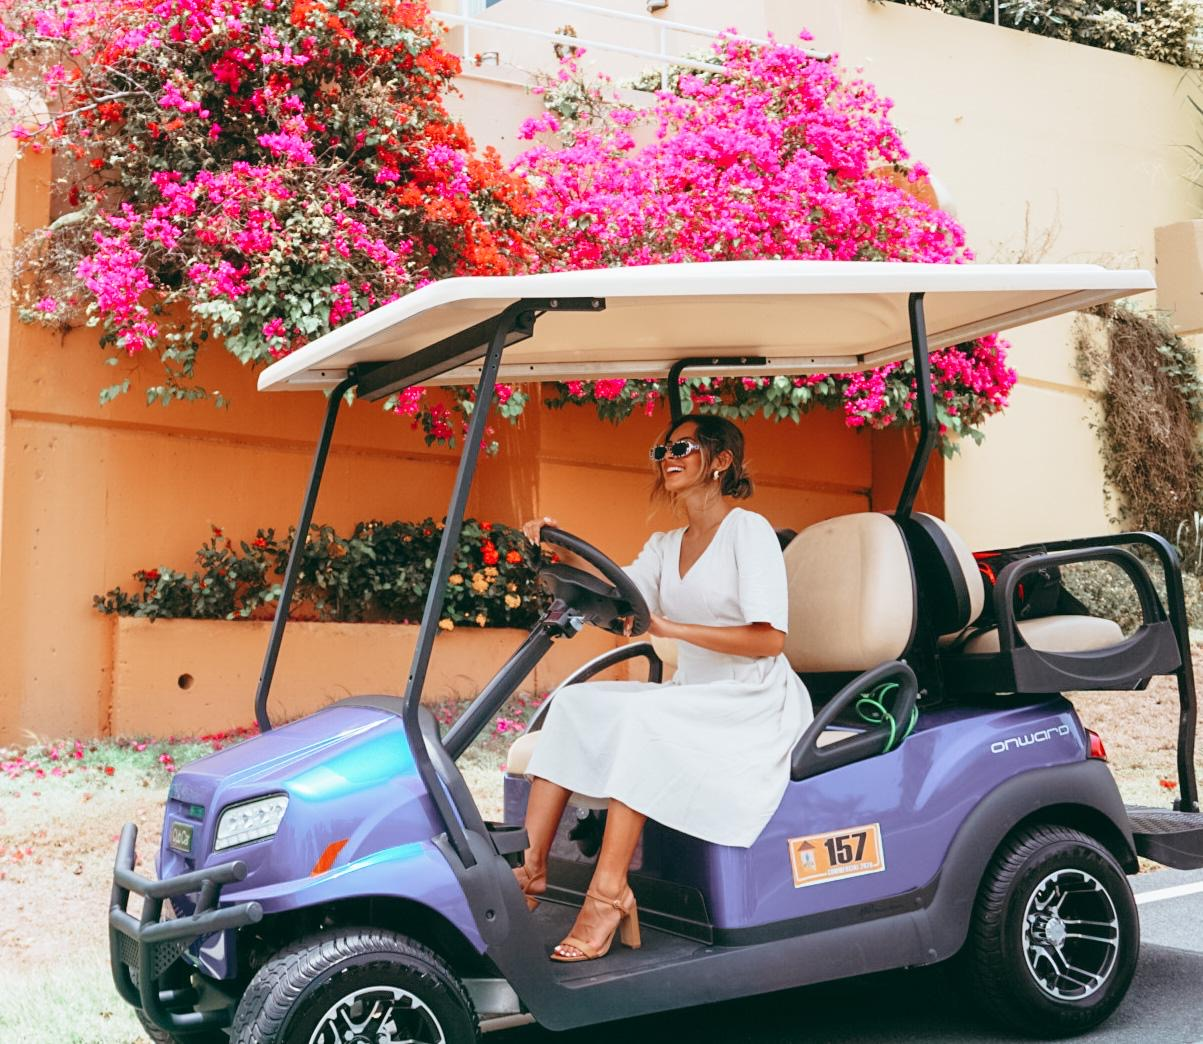 Amanda Antonella at Best Golf Car Rental